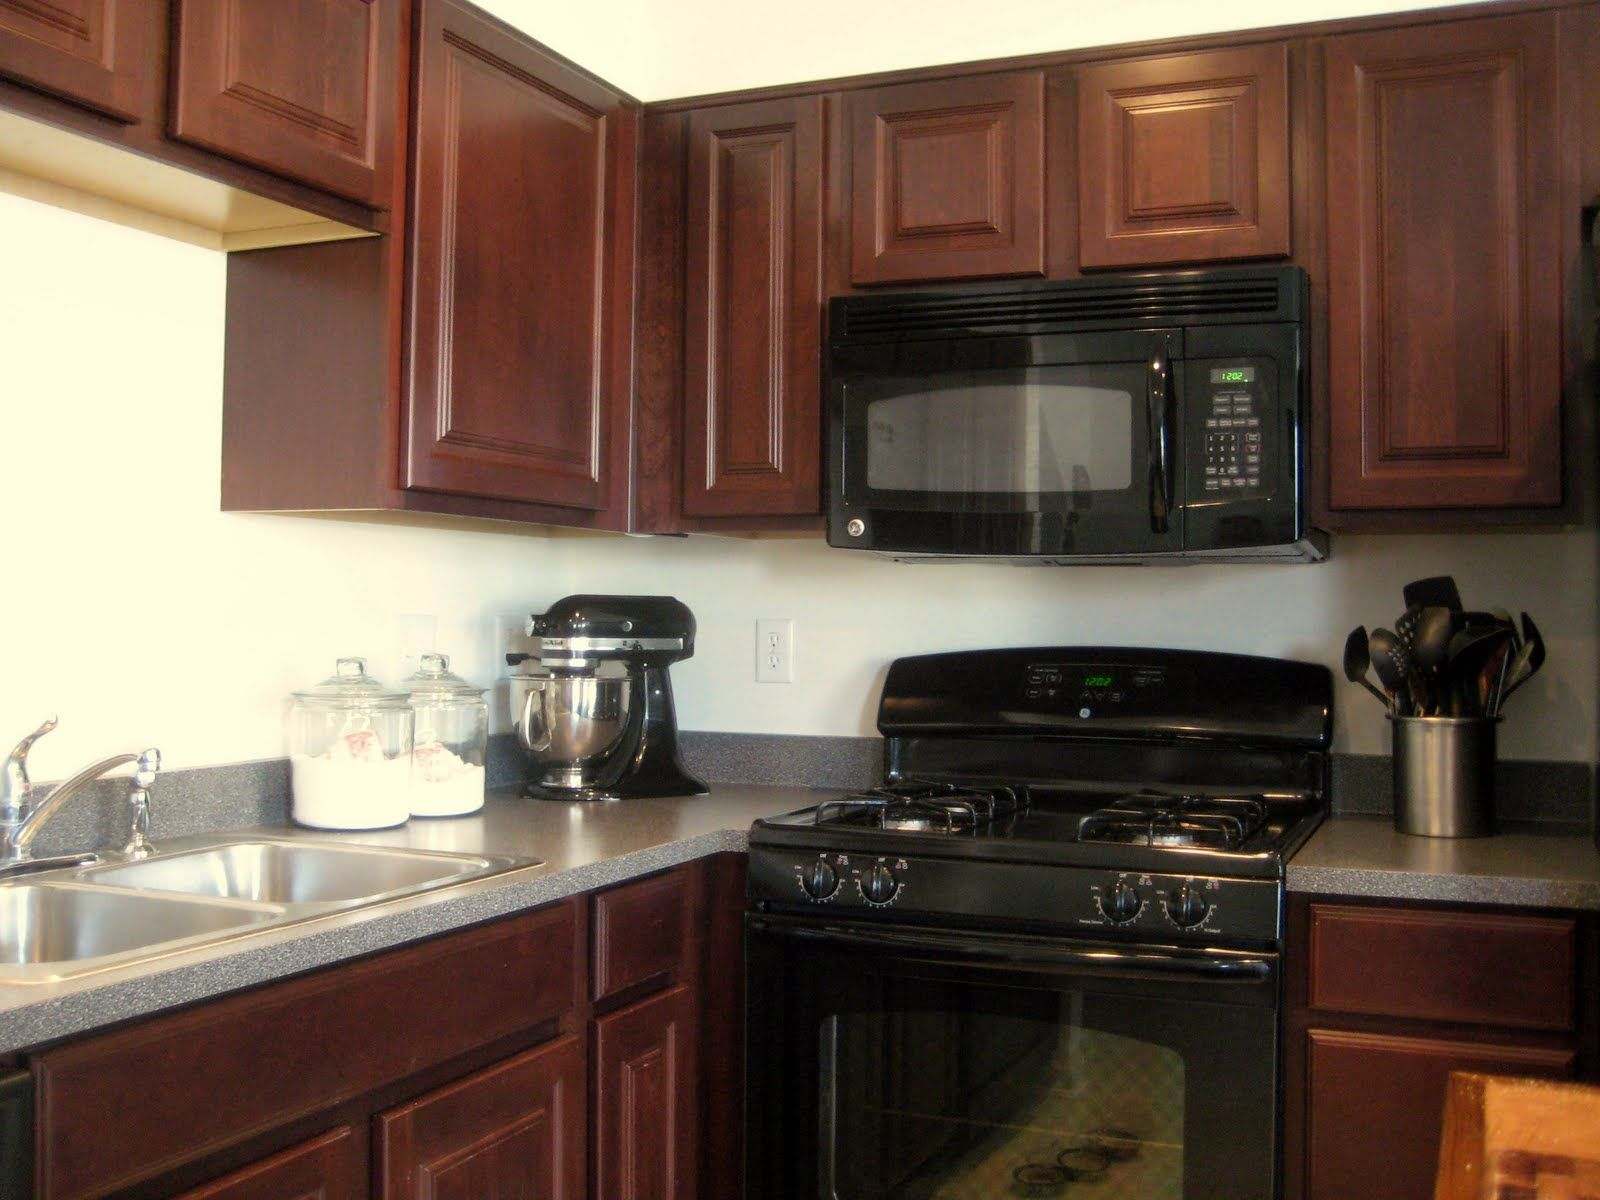 delightful Painted Kitchen Cabinets With Black Appliances #5: Black appliances, cherry cabinets, and grey countertops